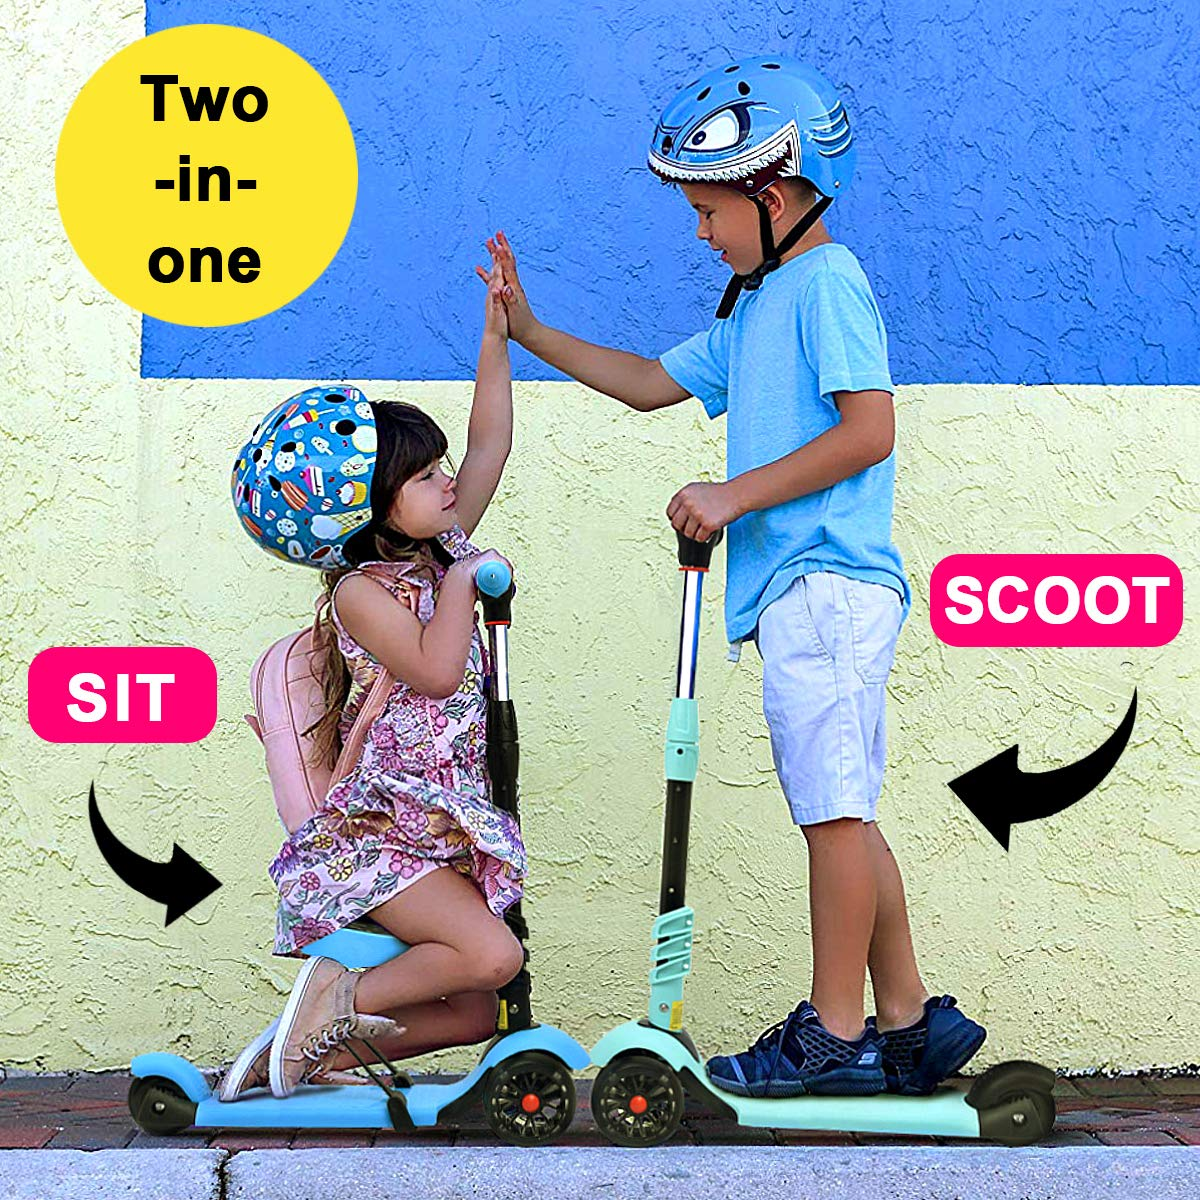 XJD 2 in 1 Scooter for Kids with Removable Seat Toddler Scooter for Boys Girls Adjustable Height PU Flashing Wheels Extra Wide Deck 3 Wheel Scooter ...